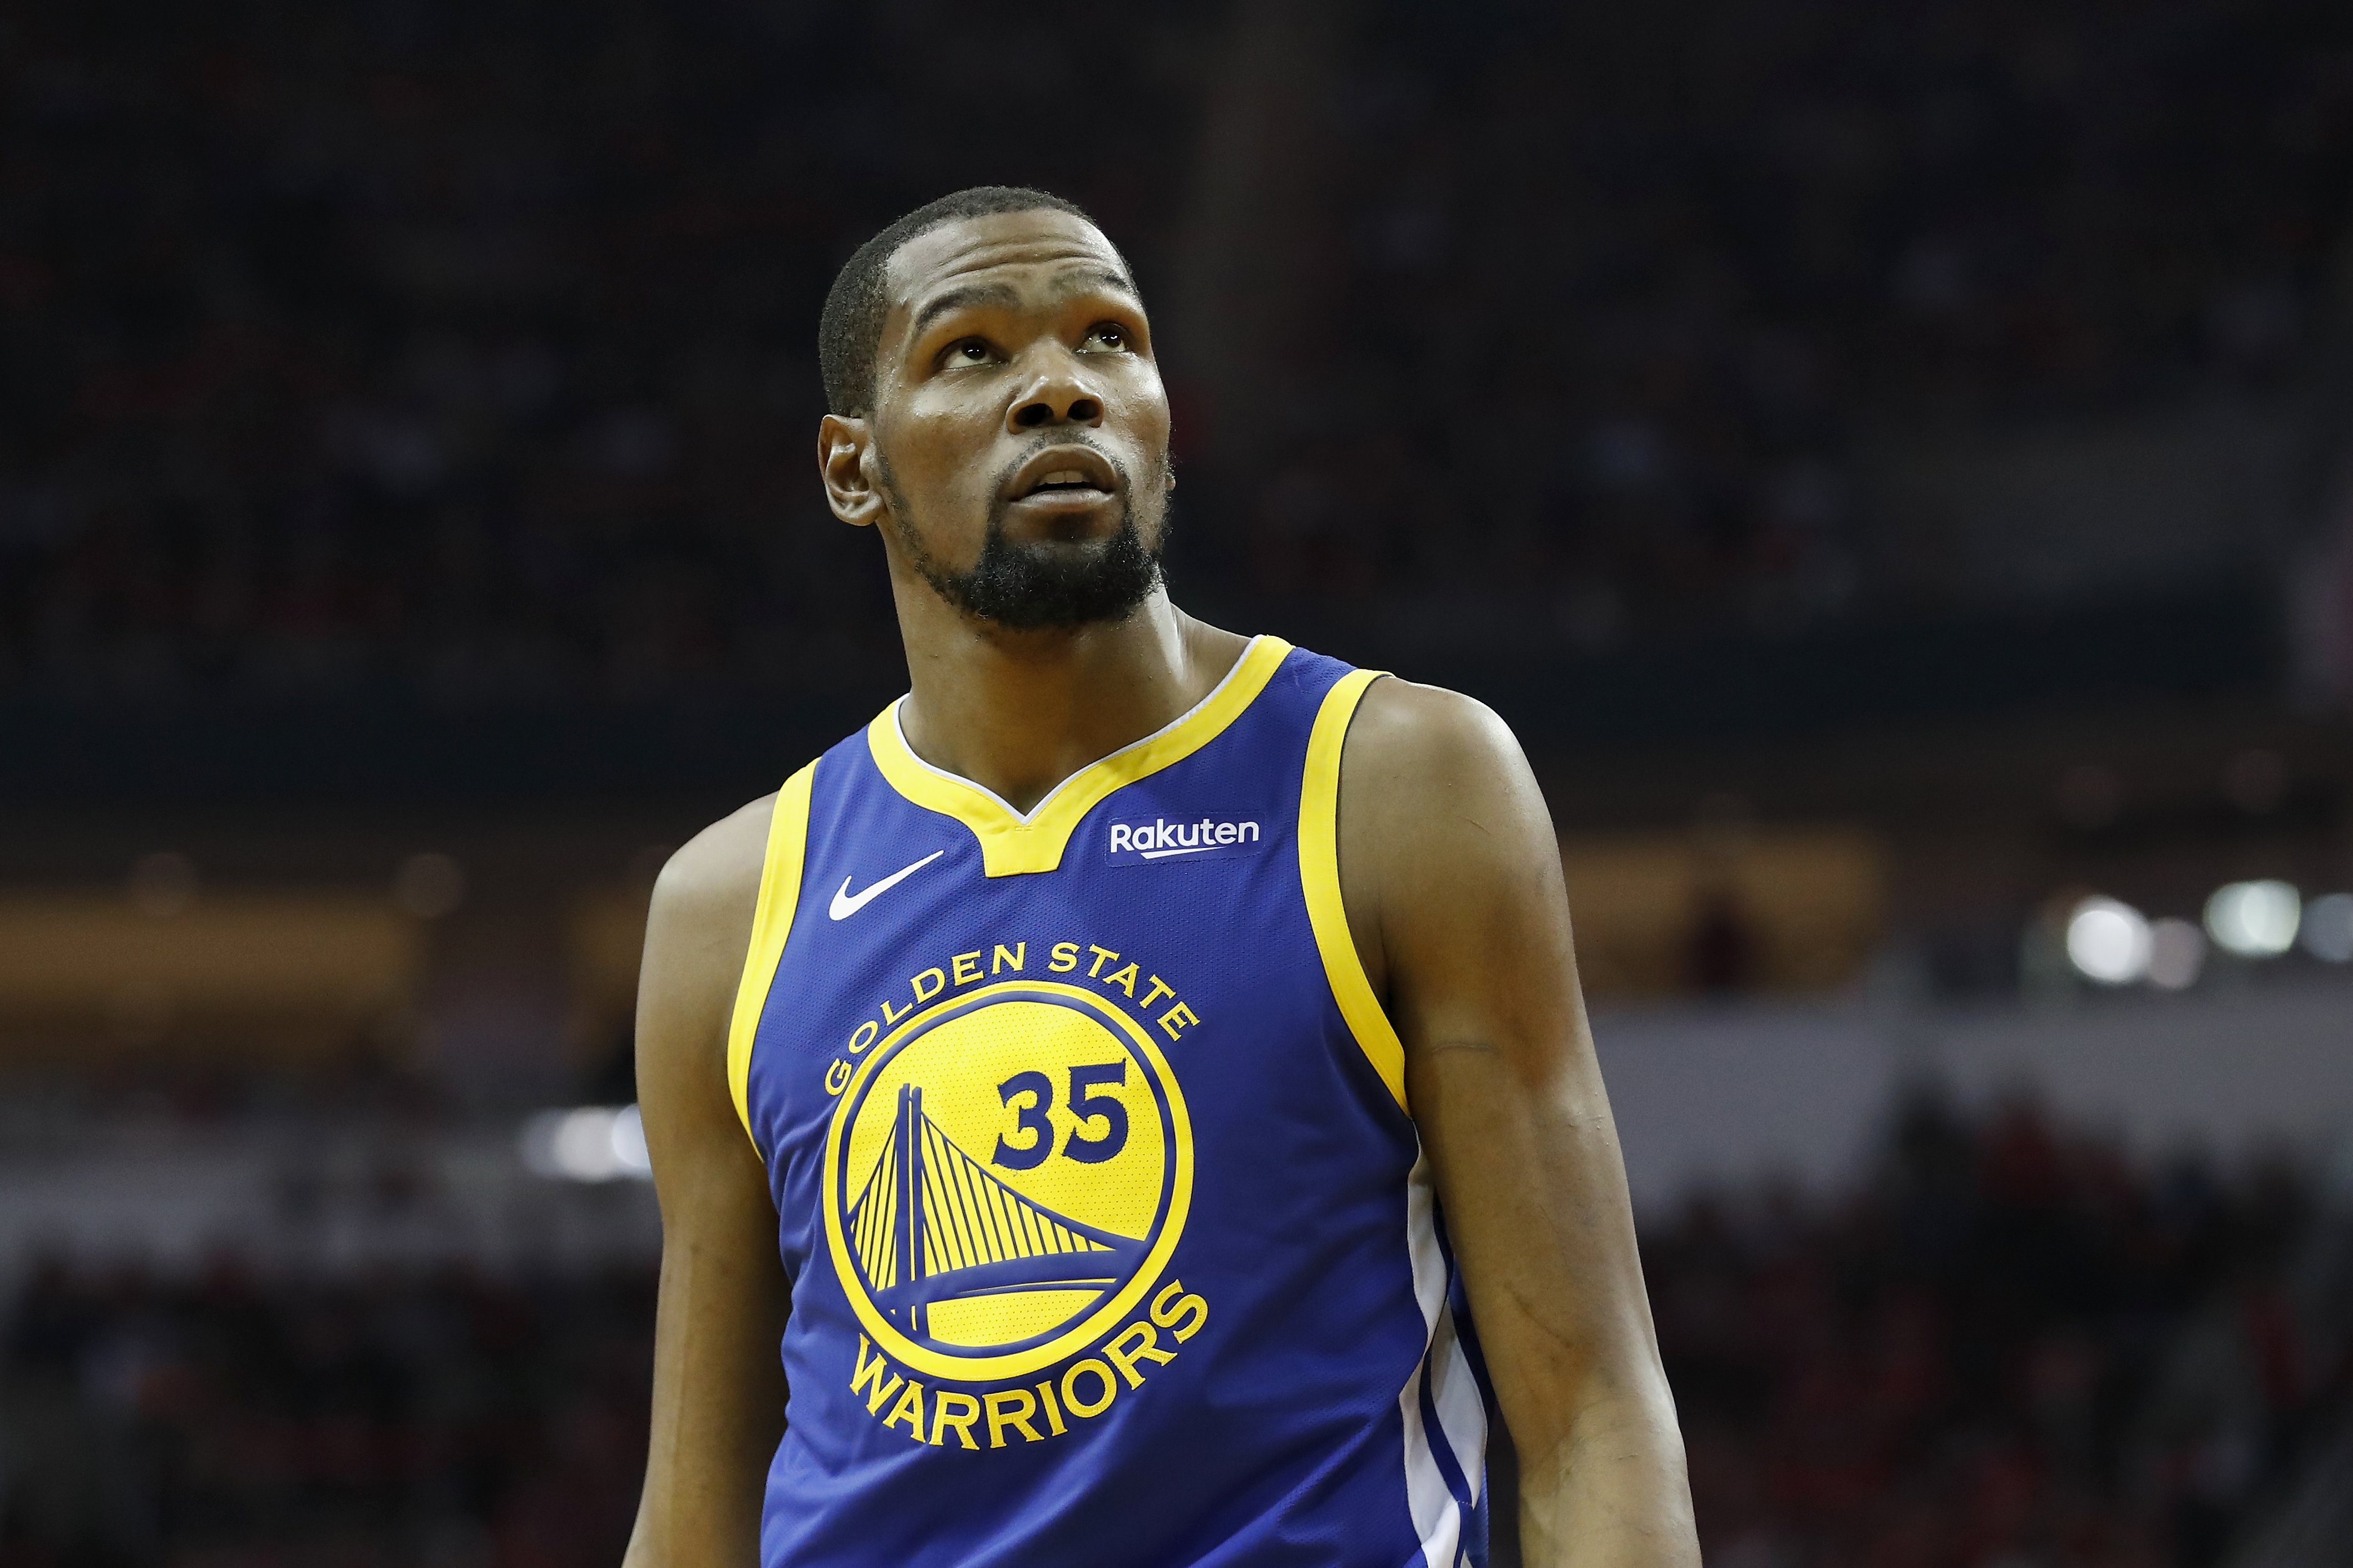 evin Durant during the 2019 NBA Western Conference Playoffs against the Houston Rockets at Toyota Center on May 4, 2019 in Houston, Texas | Photo: GettyImages